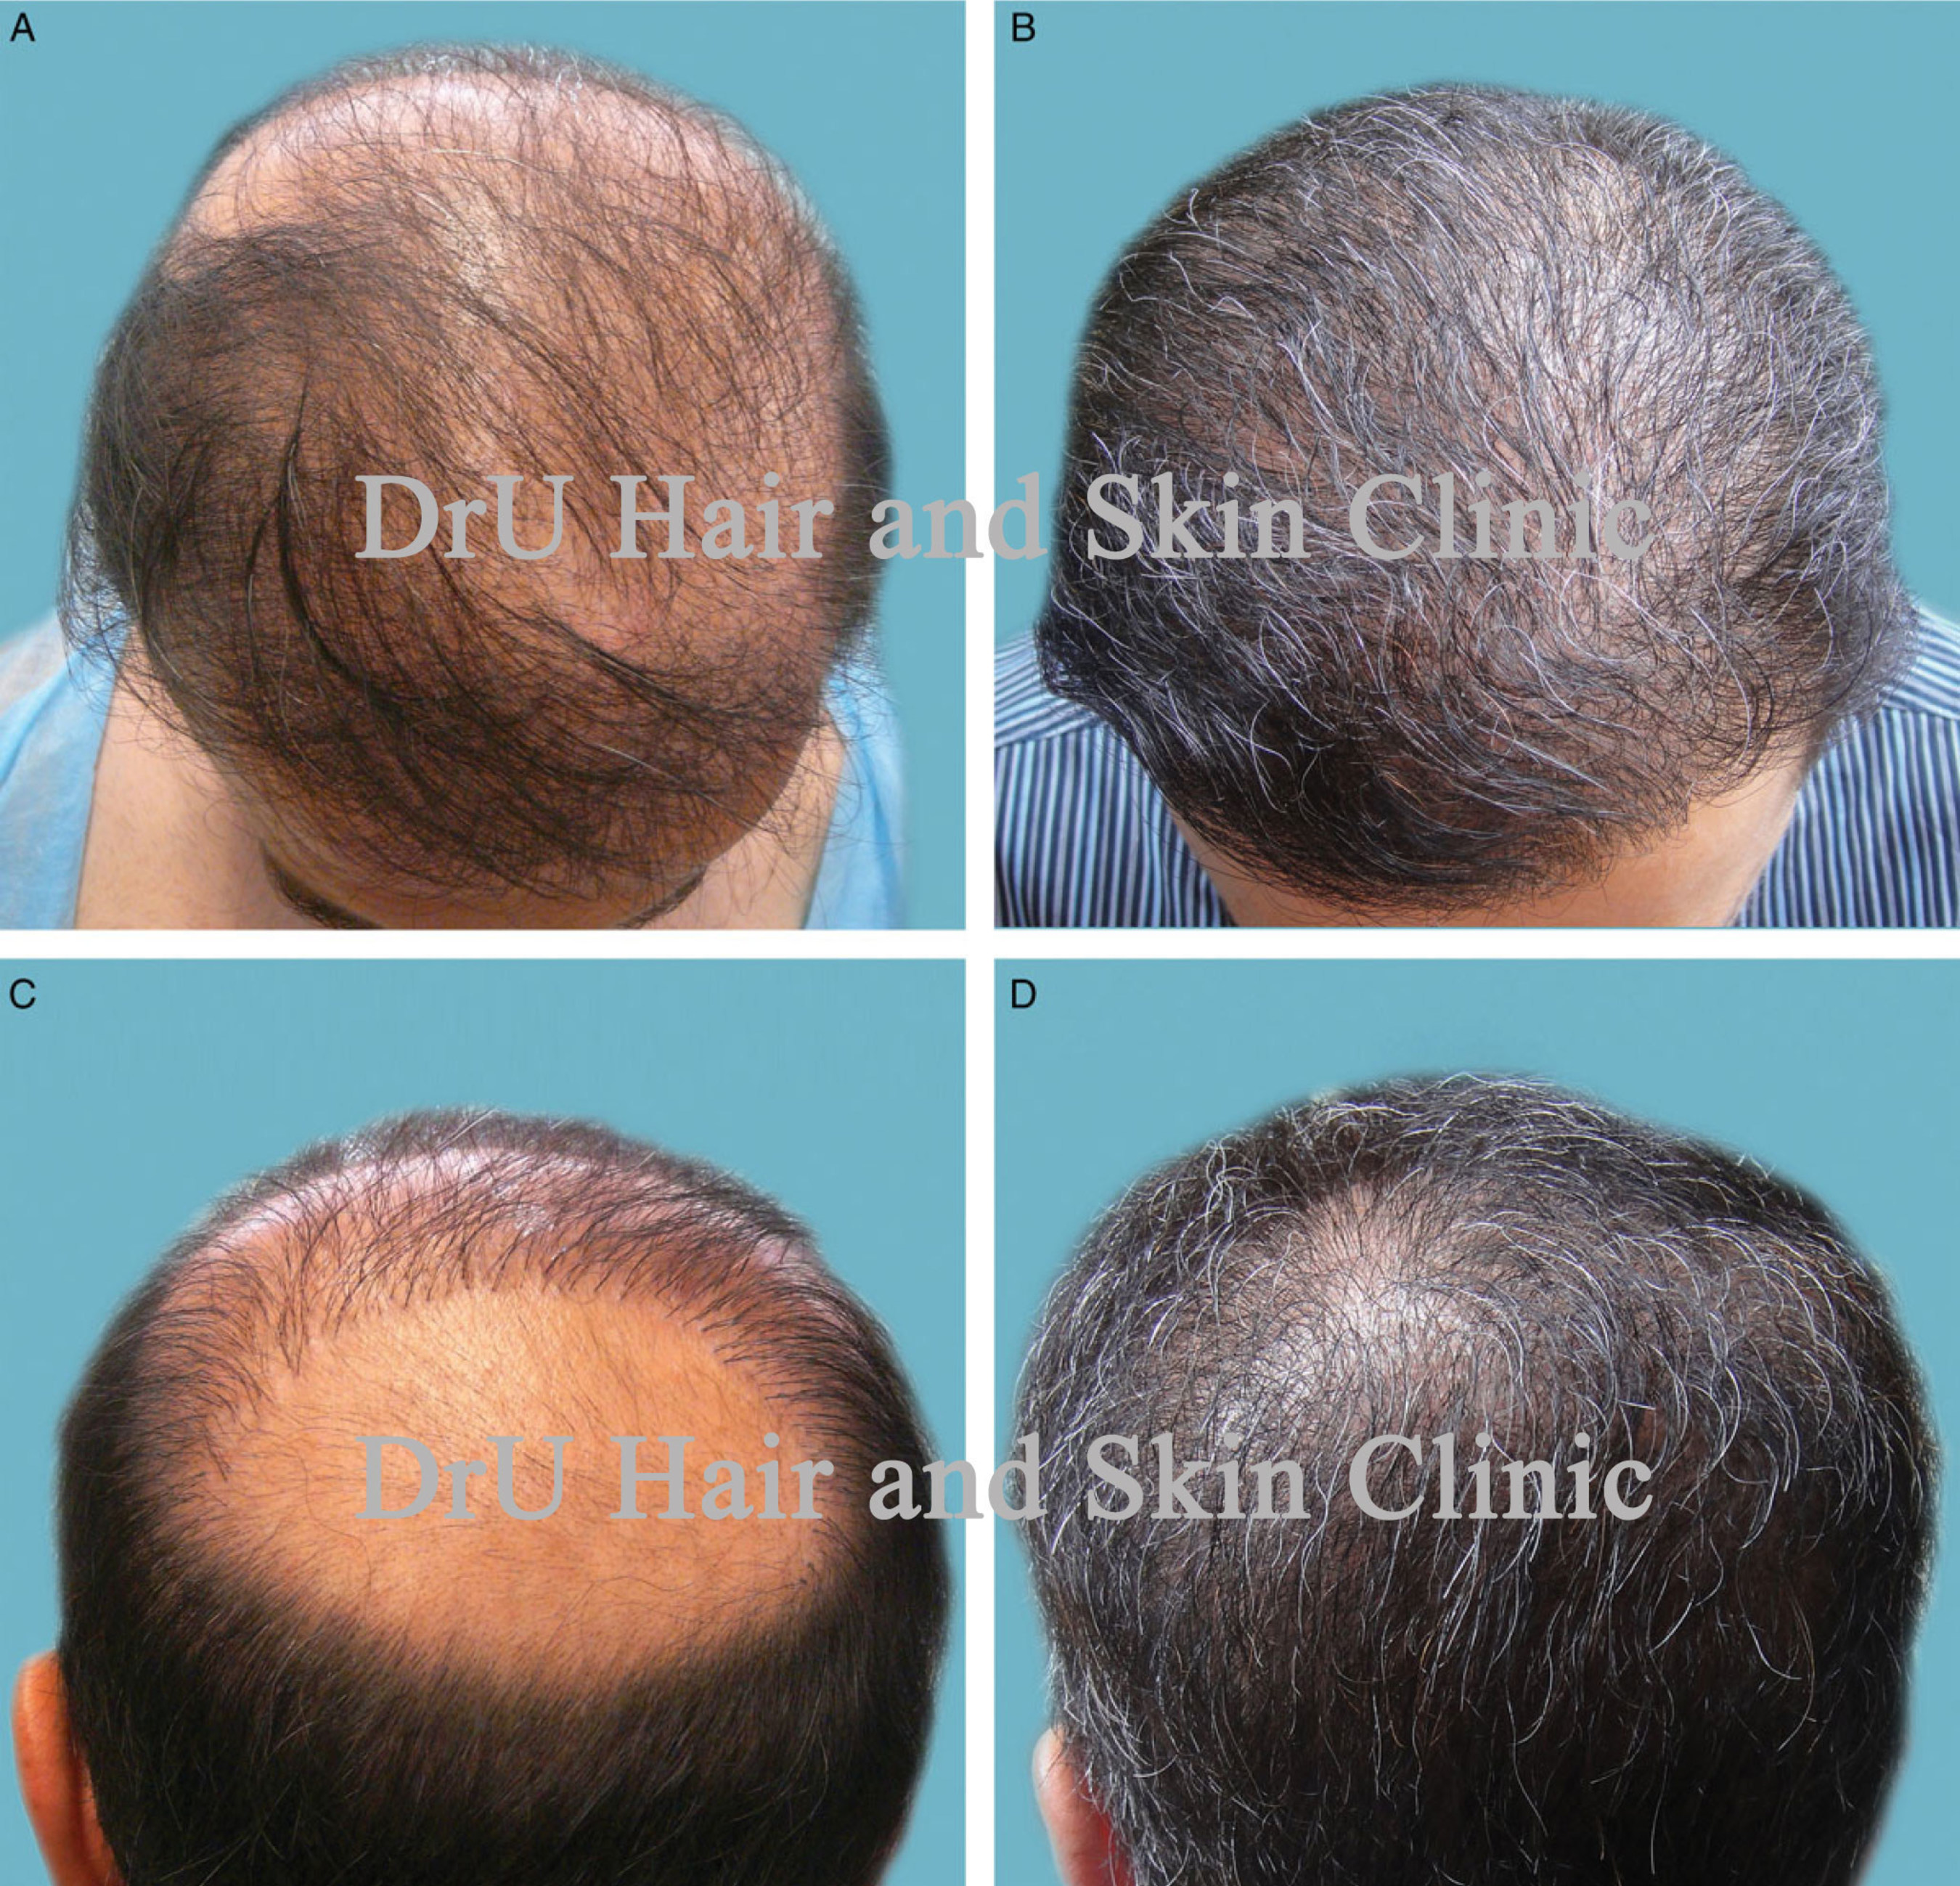 The results of UGraft by Dr. Sanusi Umar, before and after actual patient photos